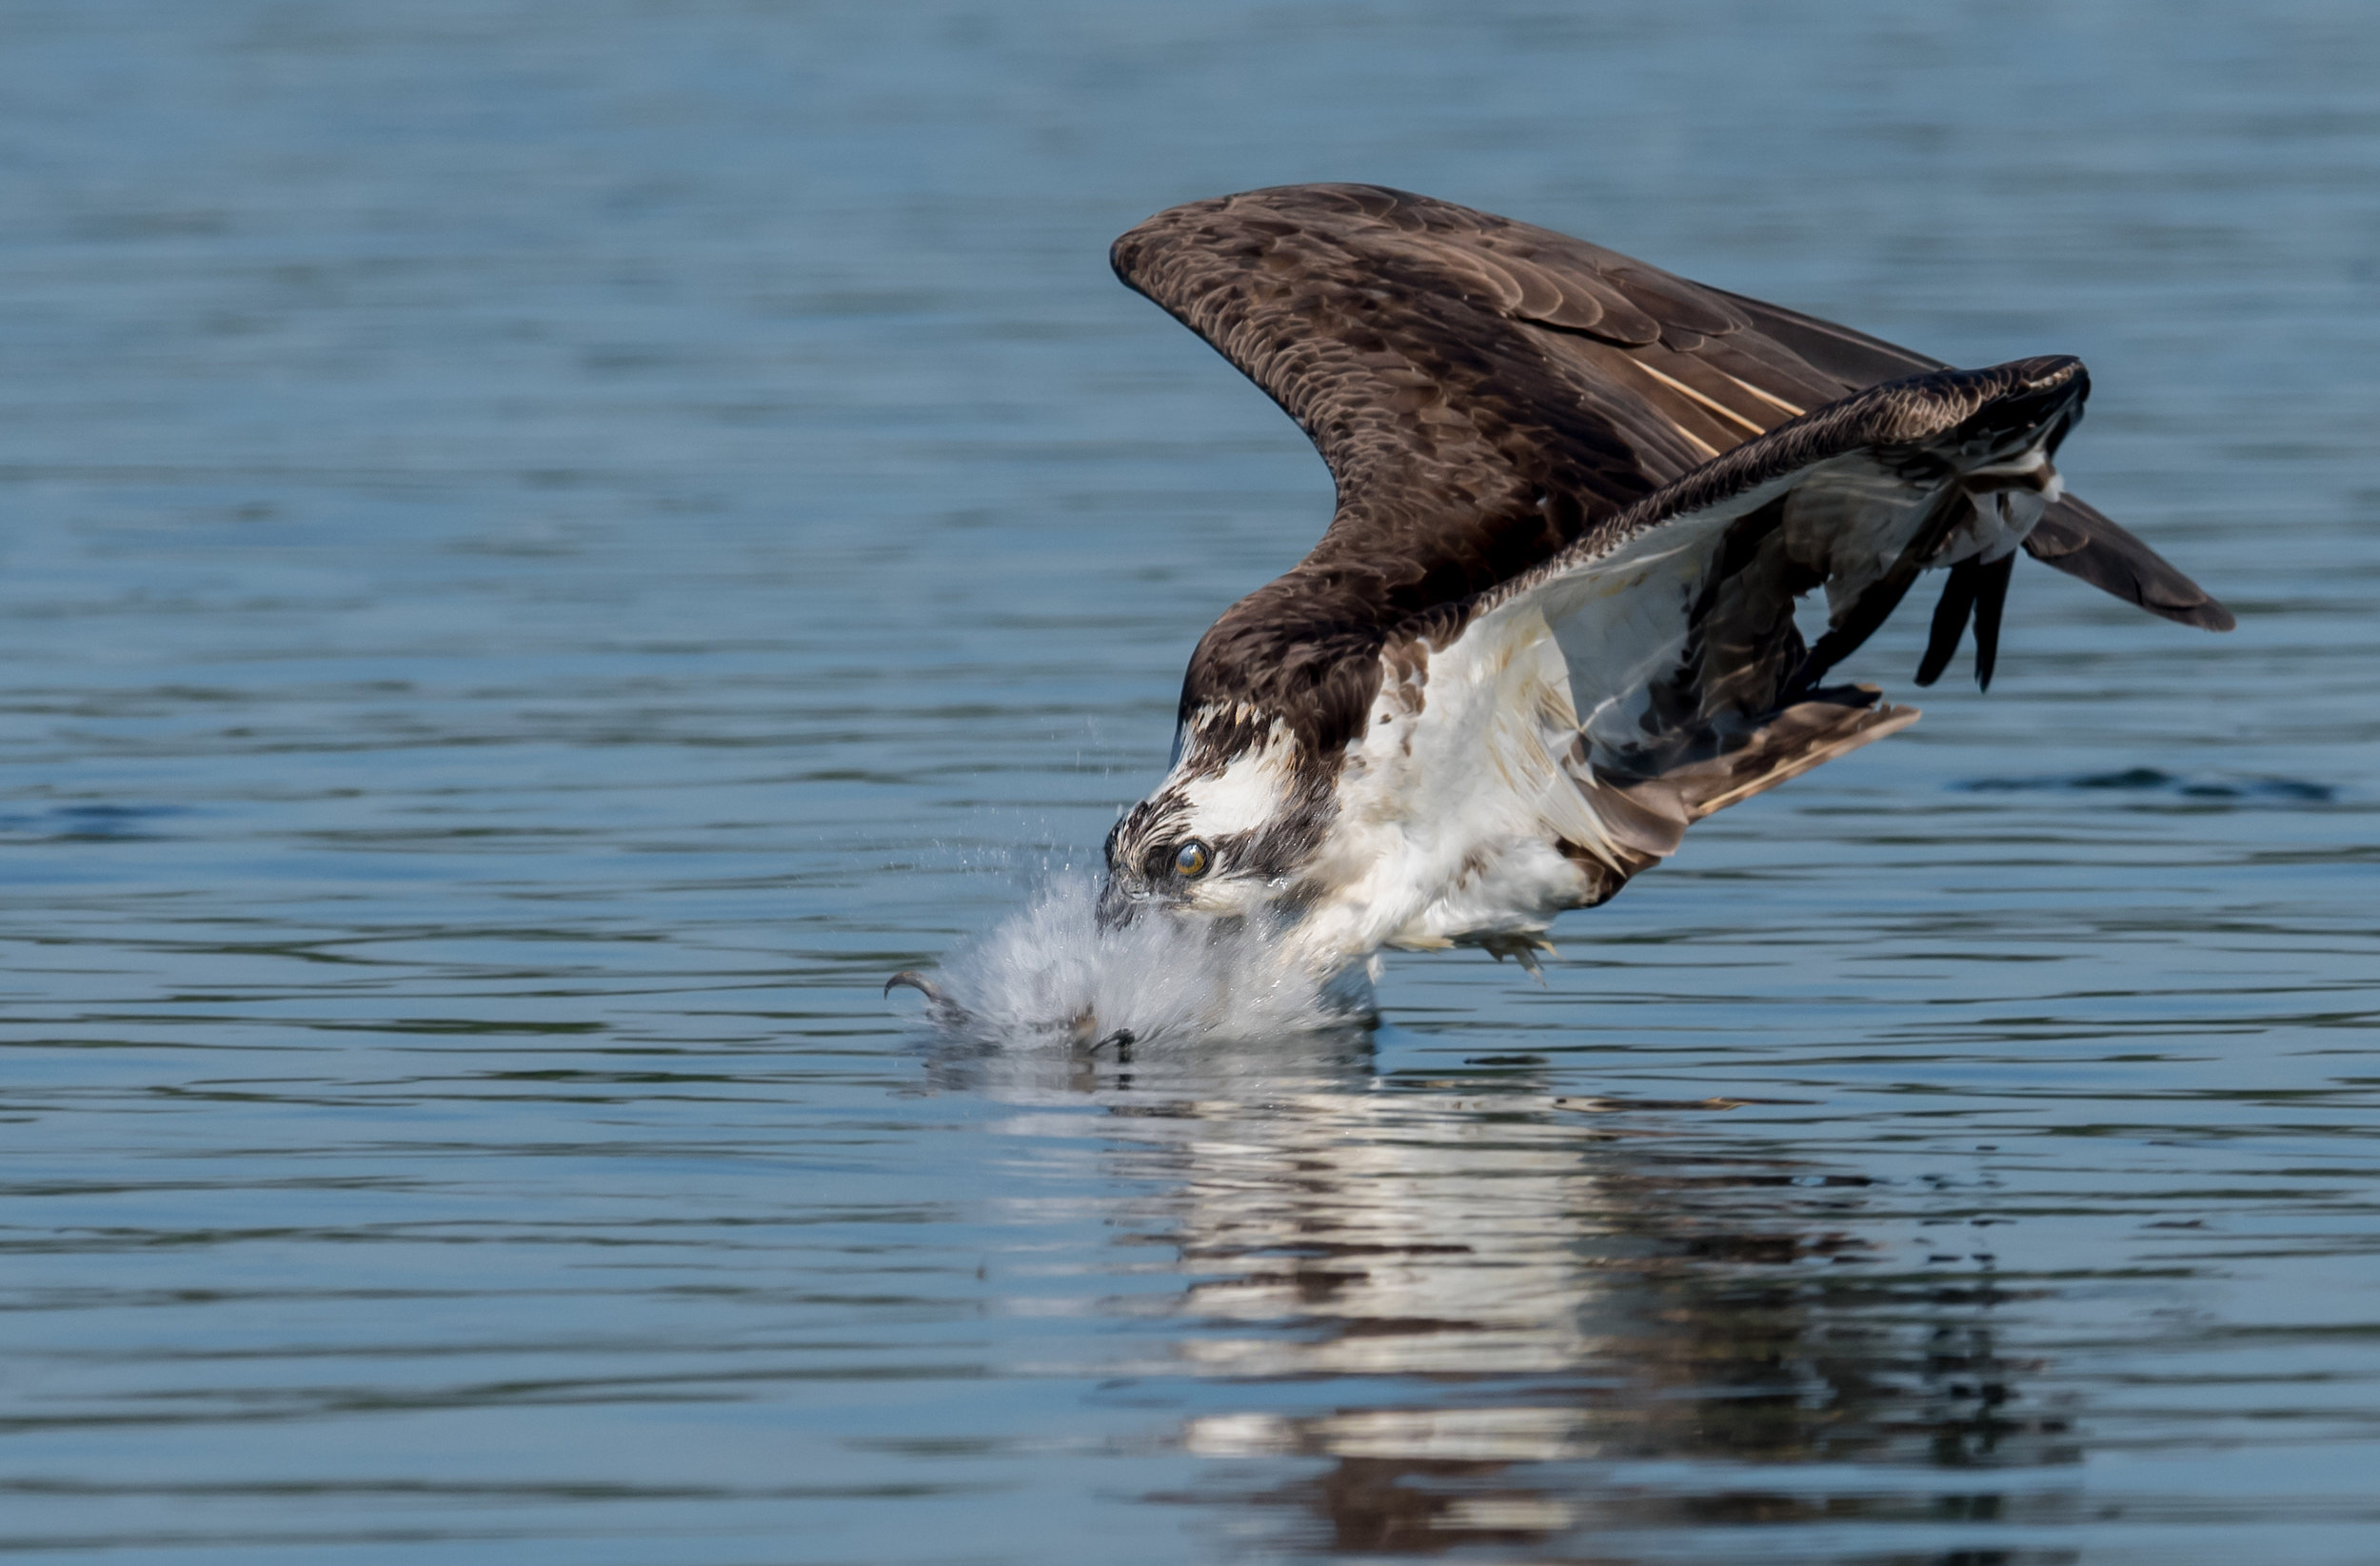 Osprey - I took a trip to Connecticut in the summer of 2016 to photograph osprey with my friend and very talented photographer, Kristofer Rowe (https://www.facebook.com/KristoferRowePhotography).My goal was to get a shot of an osprey fishing with its talons forward. After many years of trying, it finally happened. Osprey dive at a high rate of speed and only put their talons forward in this position just moments before hitting the water. I waited till the last moments of the approach to make sure the osprey was in focus and fired away. Shooting at 10 frames per second I was lucky enough to get the bird in its final moment before submerging into the water. A truly amazing thing to witness. This photo was taken using Nikon's newer